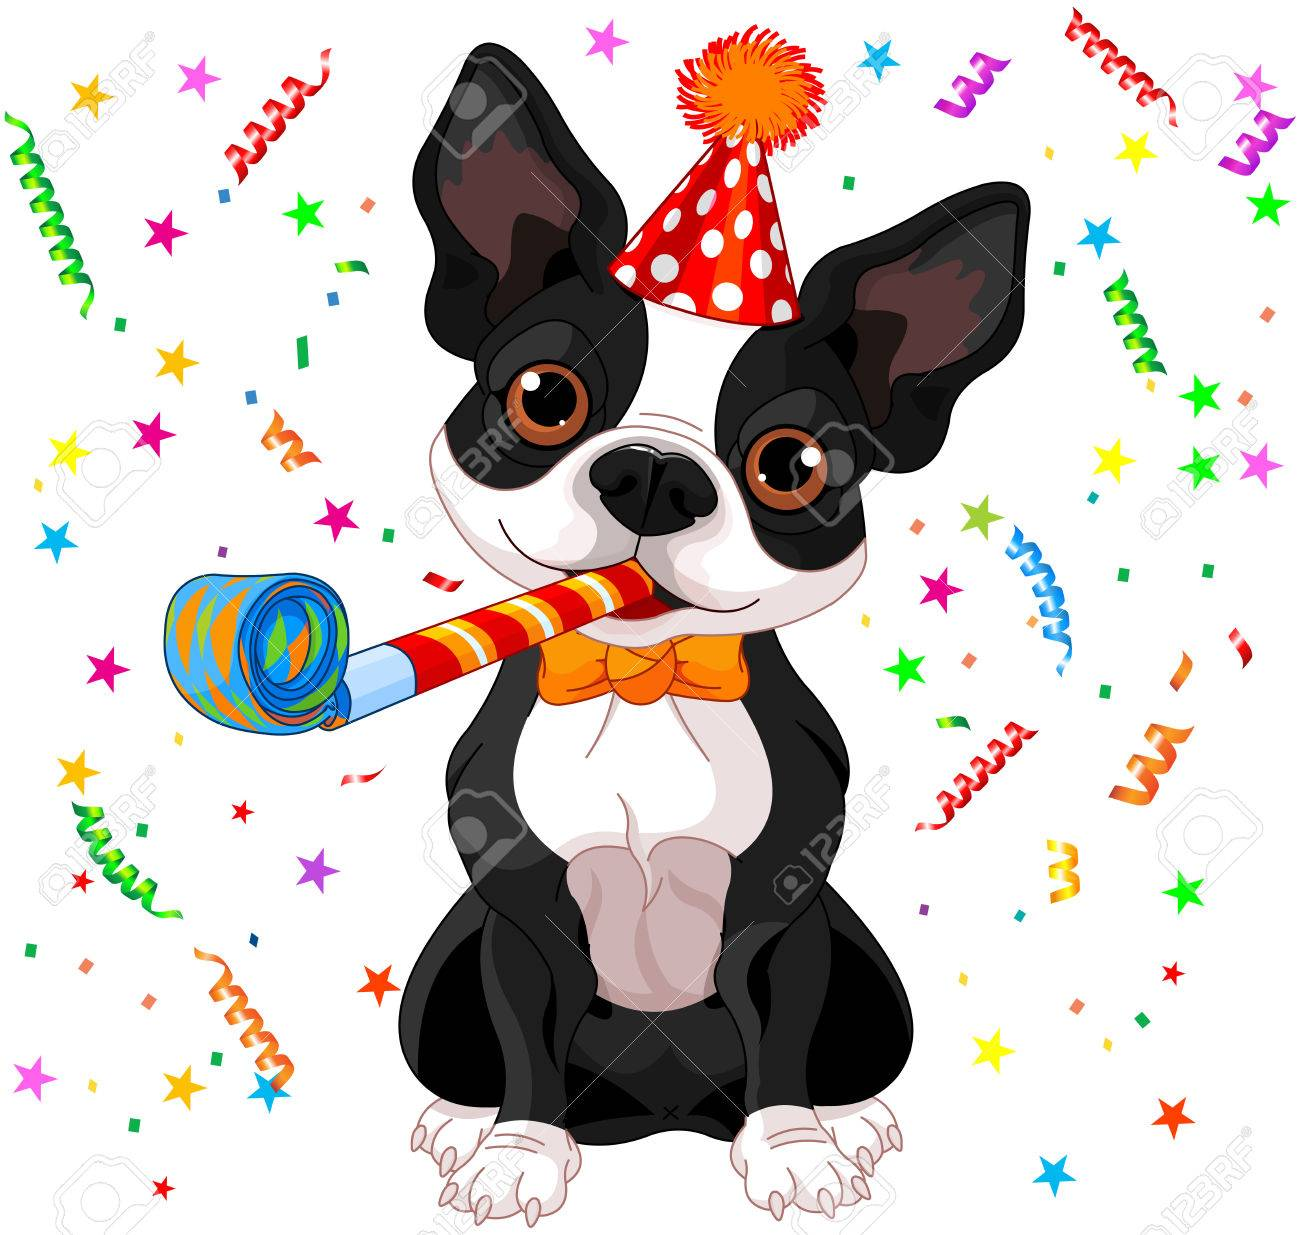 Génétique et reproduction - Page 2 35588778-illustration-of-cute-boston-terrier-celebrating